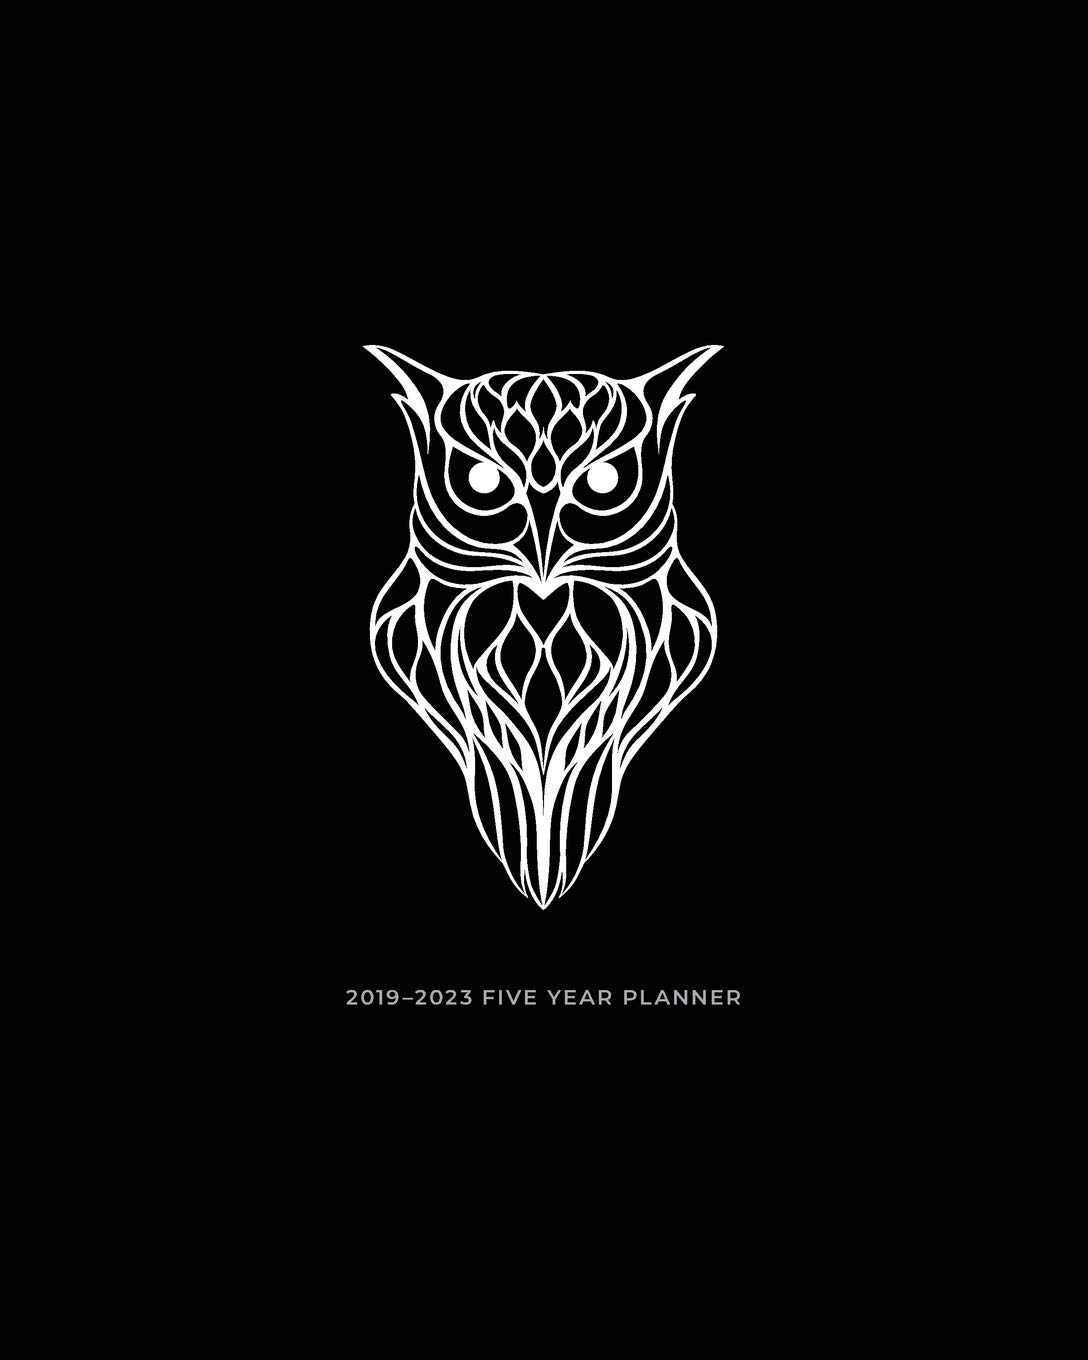 Amazon.com: 2019 - 2023 Five Year Planner: Owl 2019 Planner ...